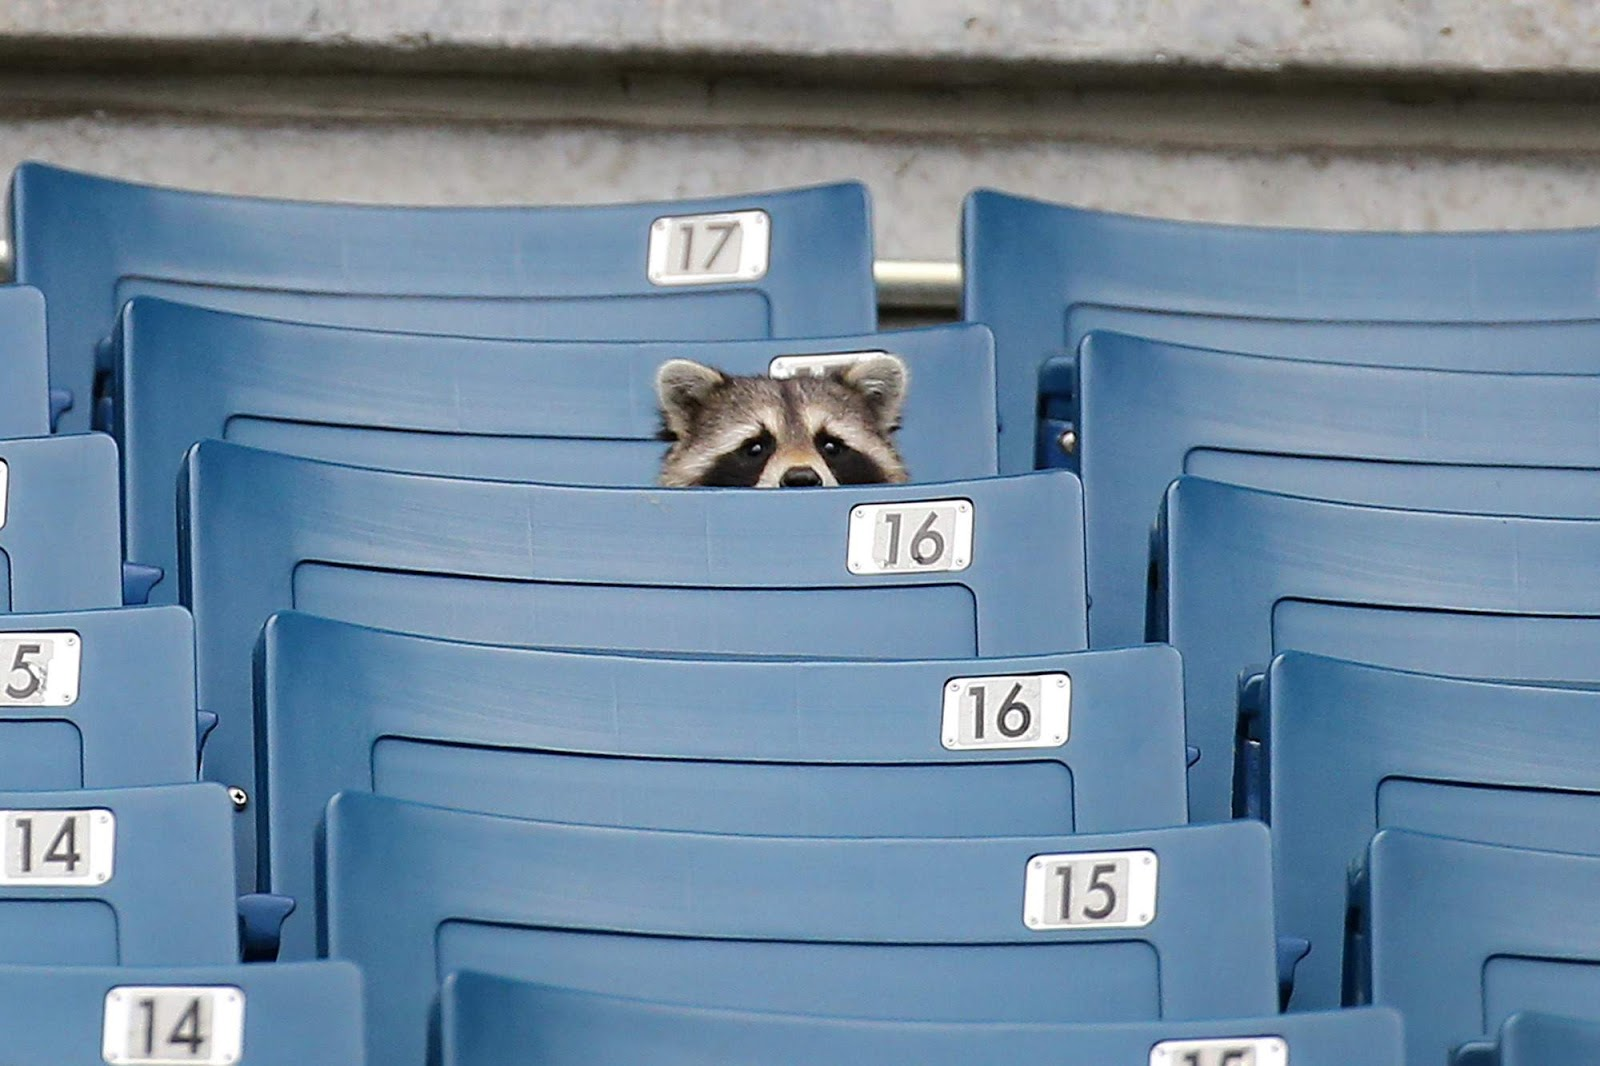 Funny animals of the week - 1 July 2016, funny animal pics, best animal photos, cute animal images